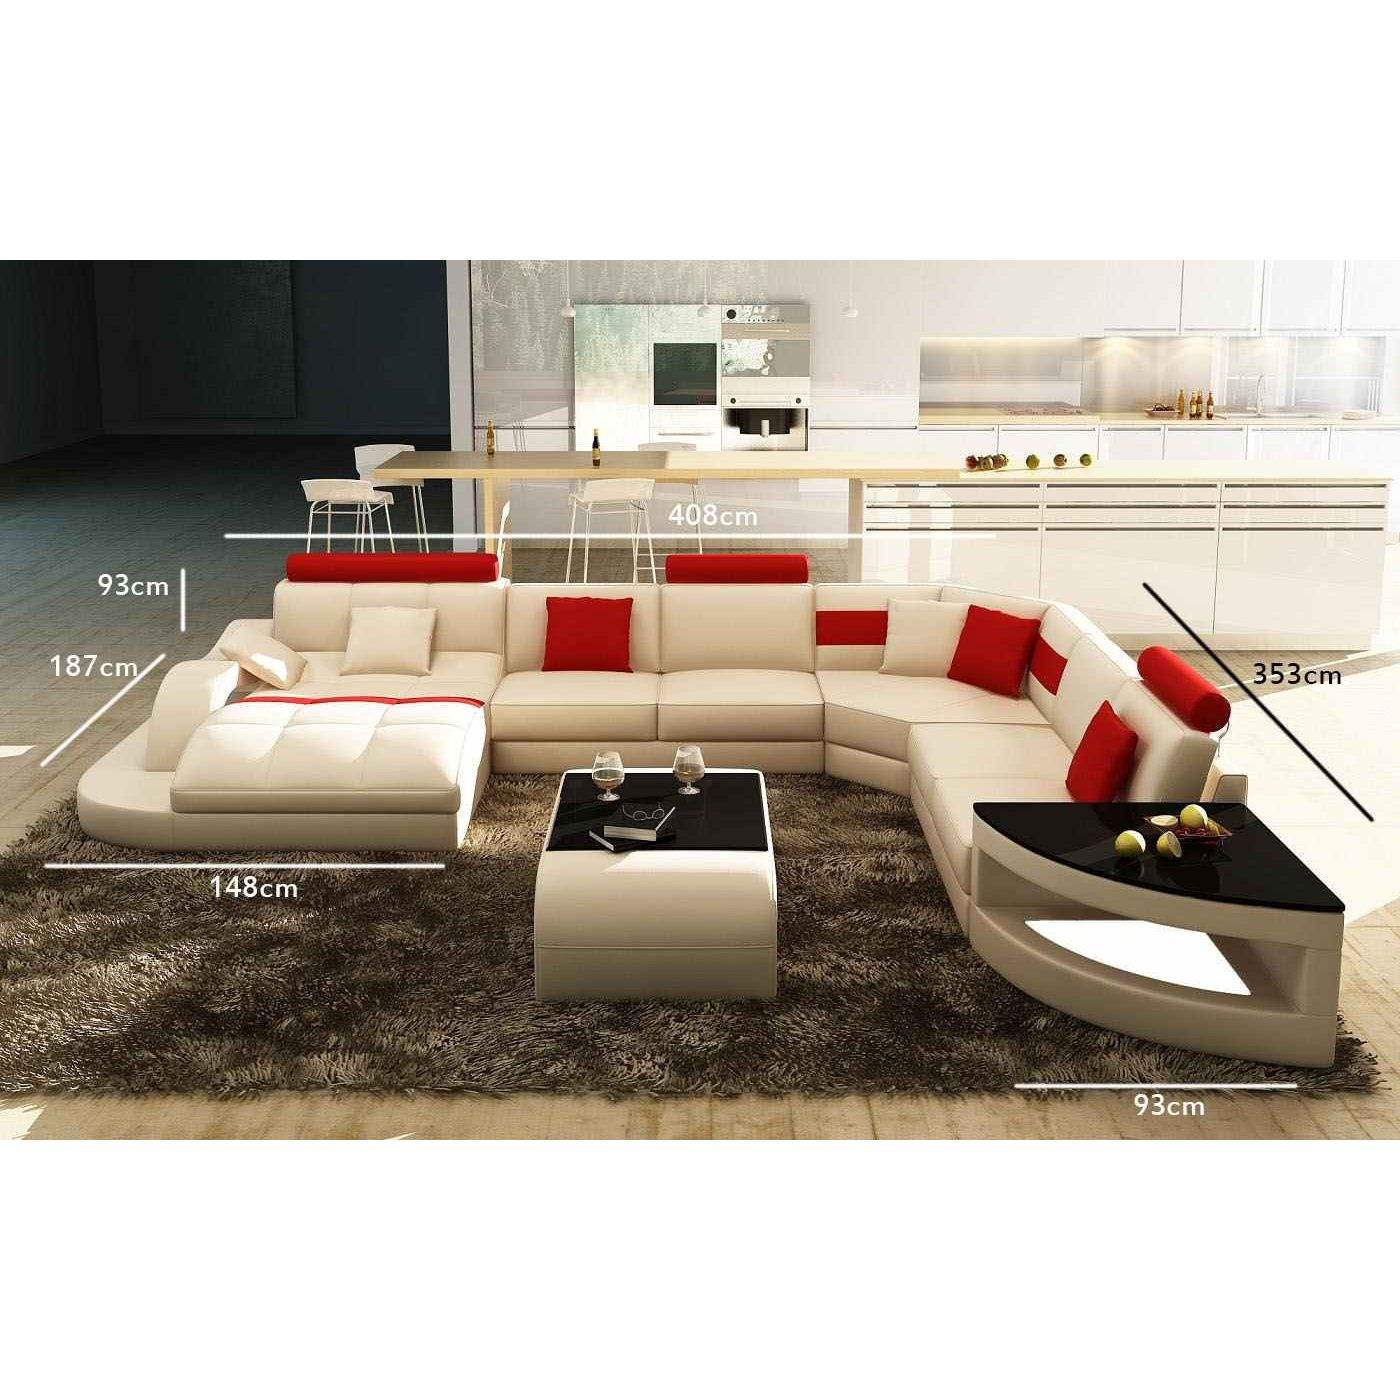 Deco in paris canape d angle design panoramique blanc et rouge istanbul pan - Canape design d angle ...